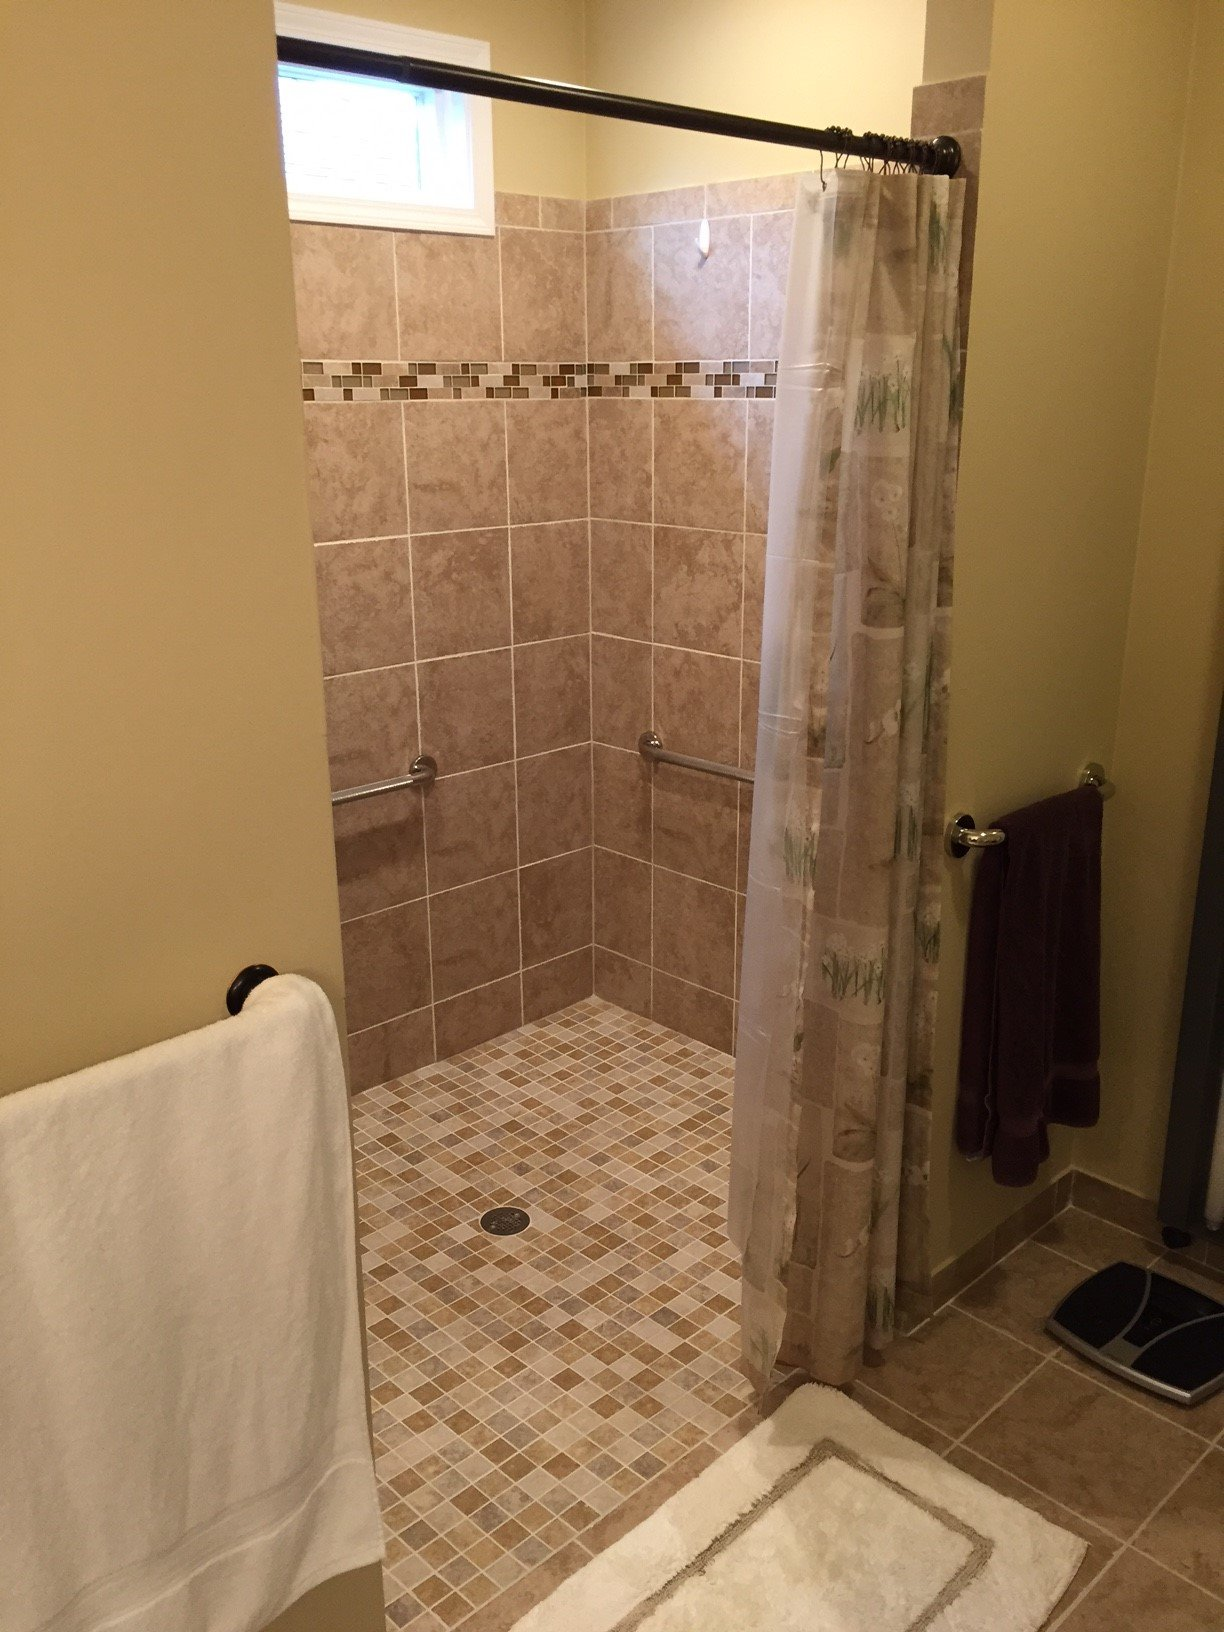 Barrier-free shower